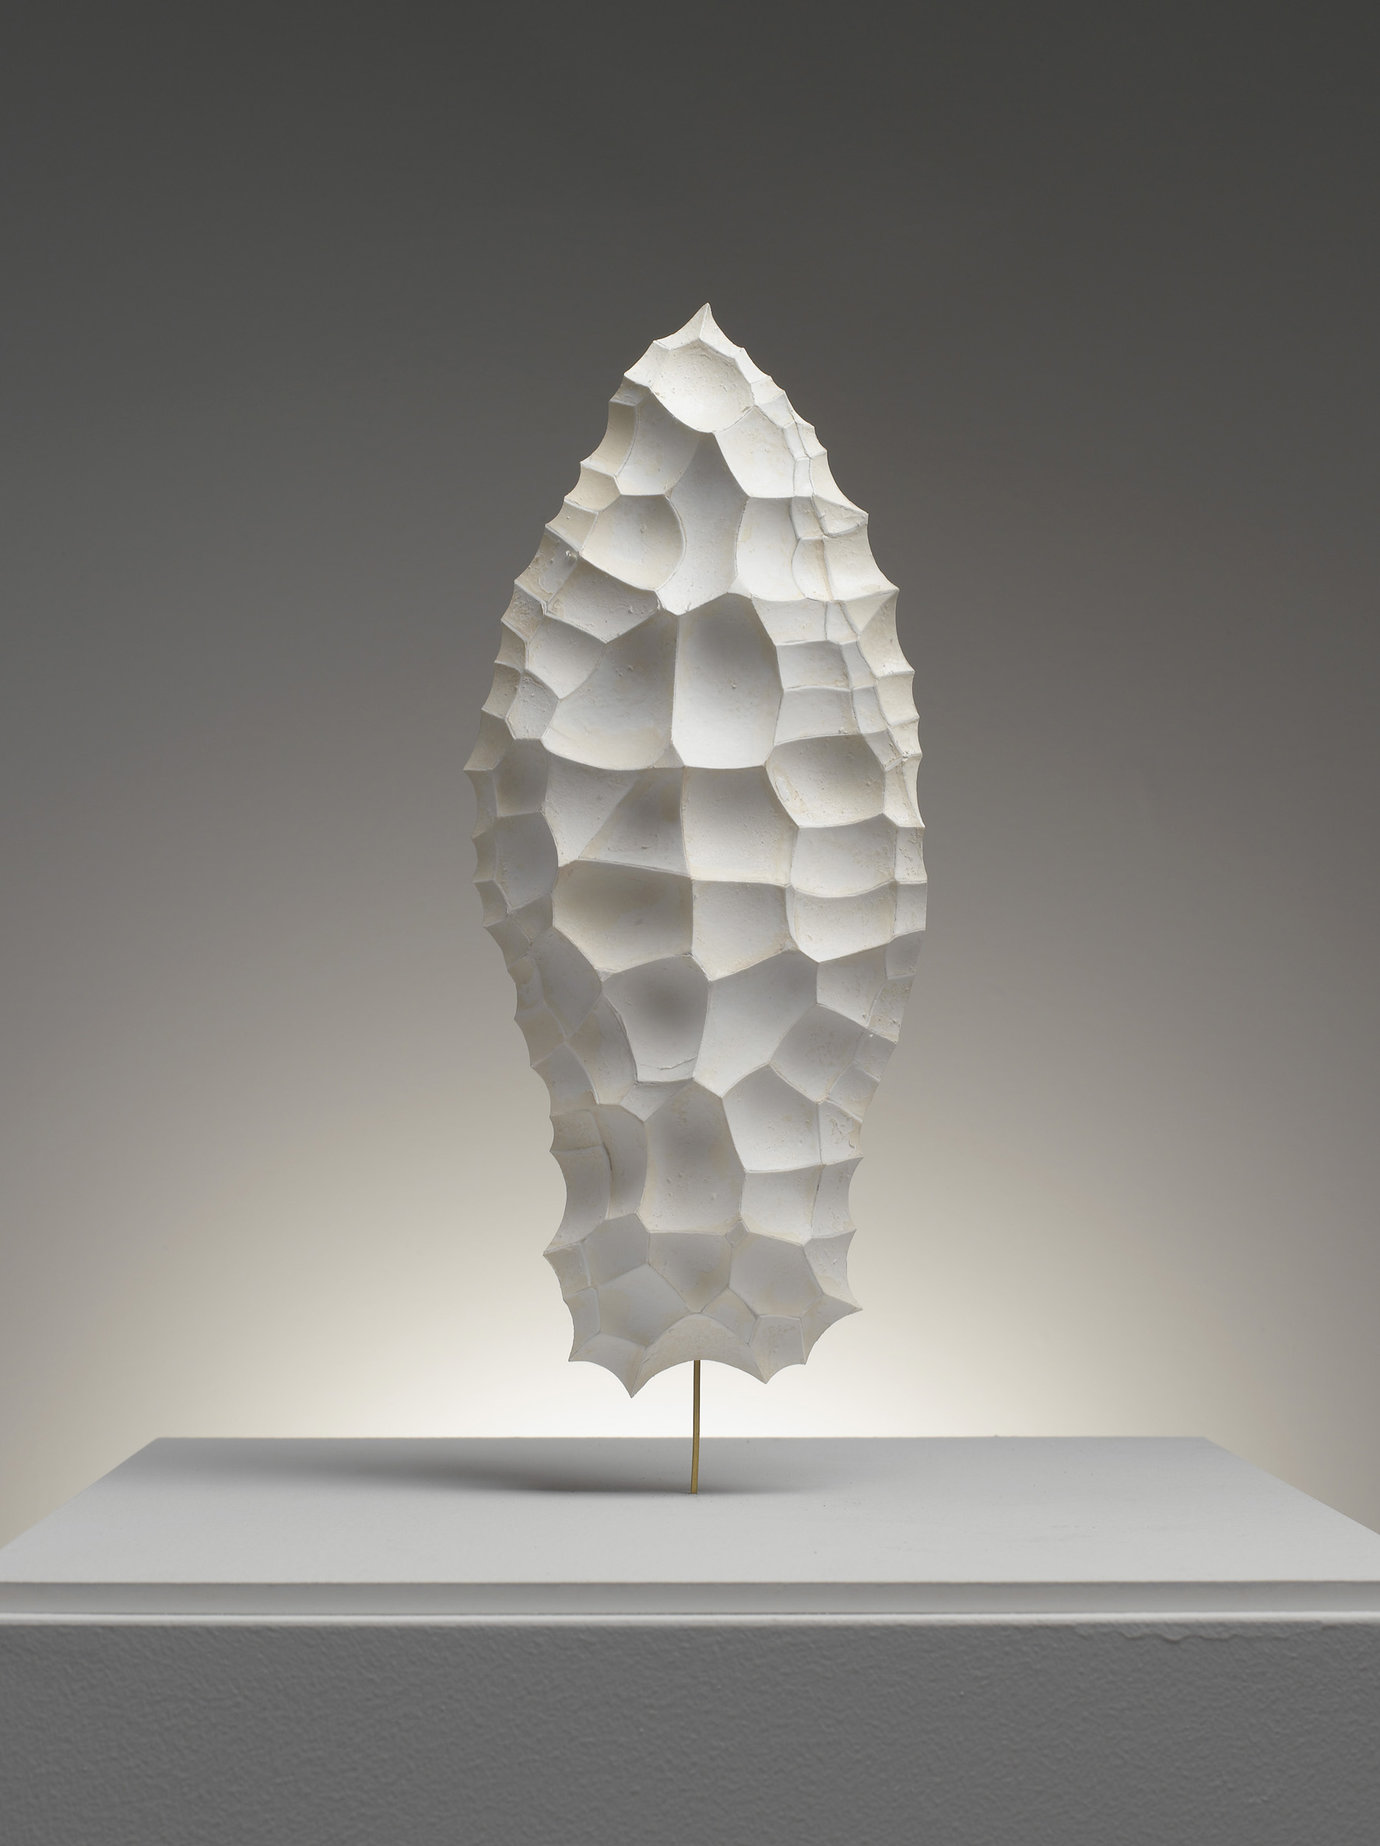 ", 2009. Eggshell, 10-1/2"" x 4-1/4"" x 1"" (26.7 cm x 10.8 cm x 2.5 cm)."